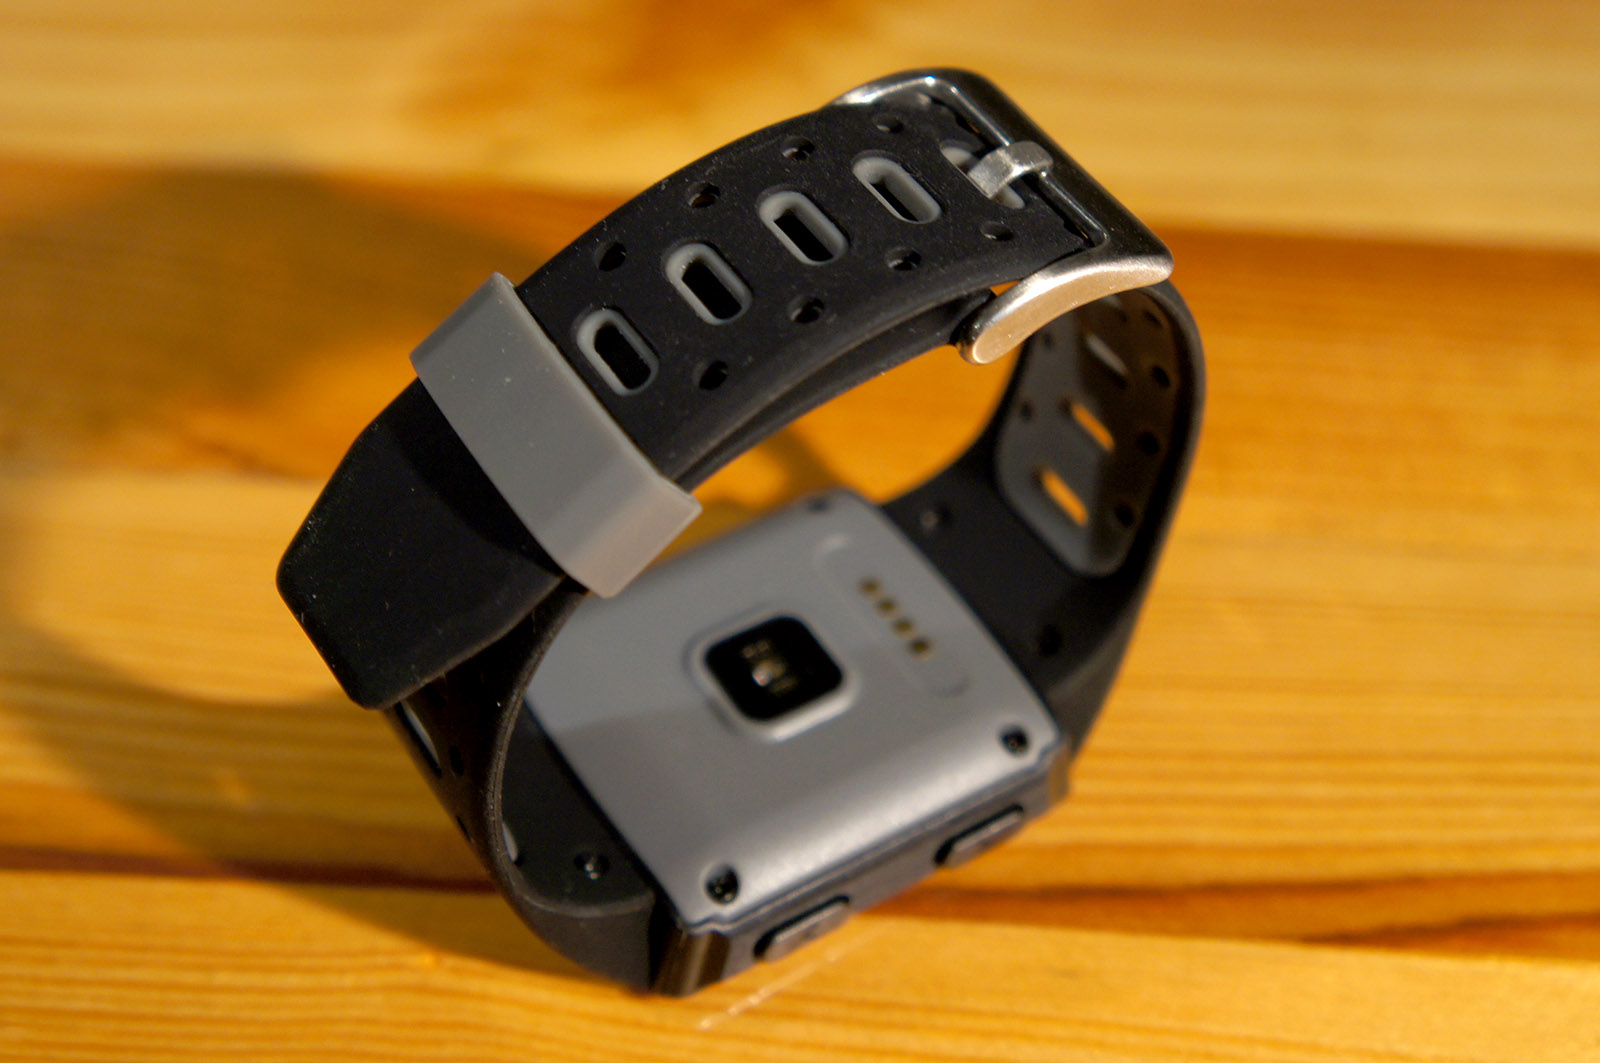 SMA M3 Smart Watch with GPS - reviews